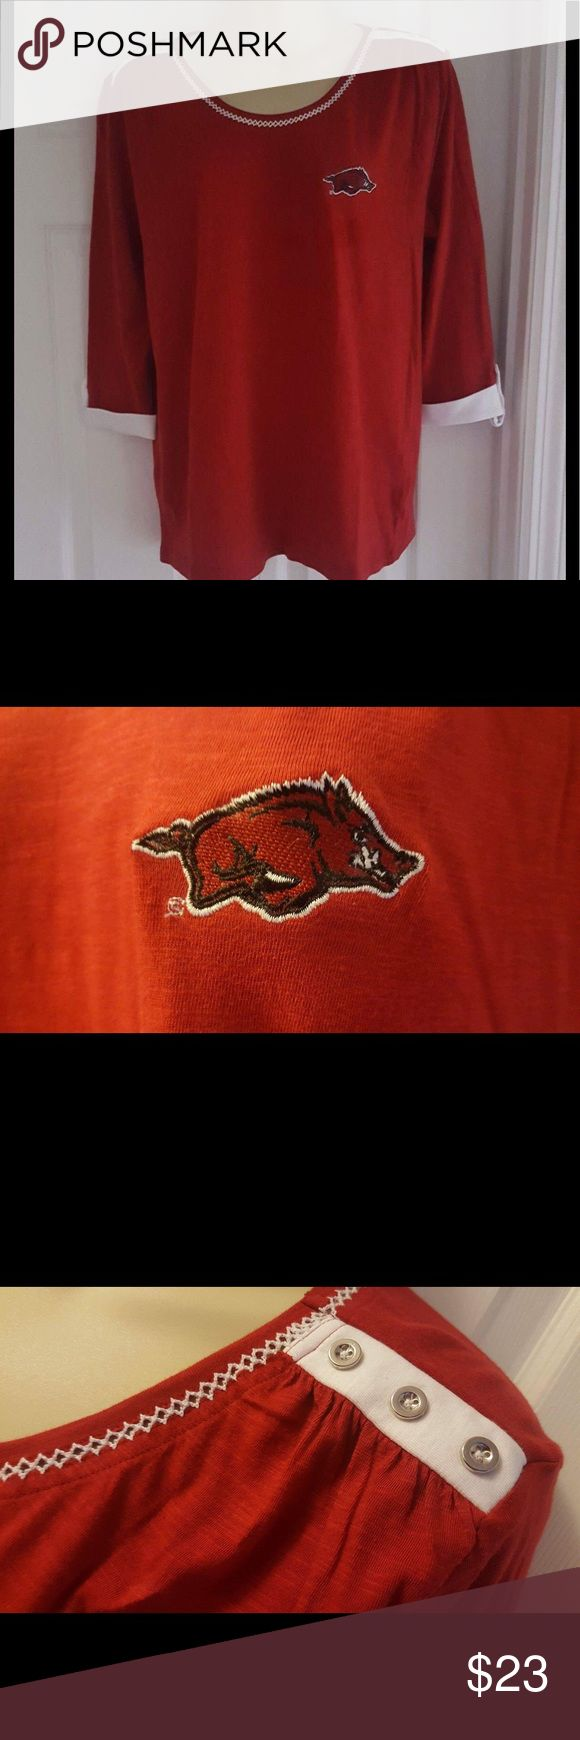 Arkansas Razorbacks 3/4 roll up sleeve tee shirt University of Arkansas Razorbacks dark red 3/4 sleeve cotton fan t-shirt.  Nice detail, embroidered neckline, embroidered school logo silver buttons on shoulder and button roll up sleeves NWT UG APPAREL Tops